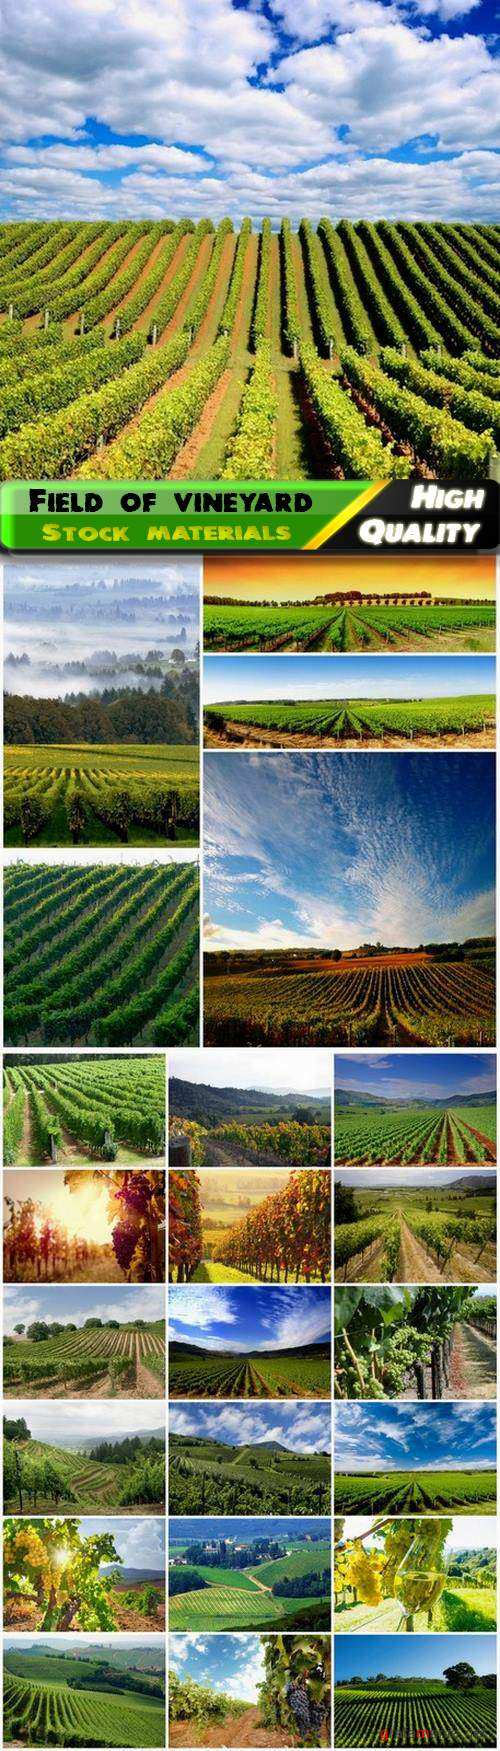 Nature landscape with field of vineyard - 25 HQ Jpg